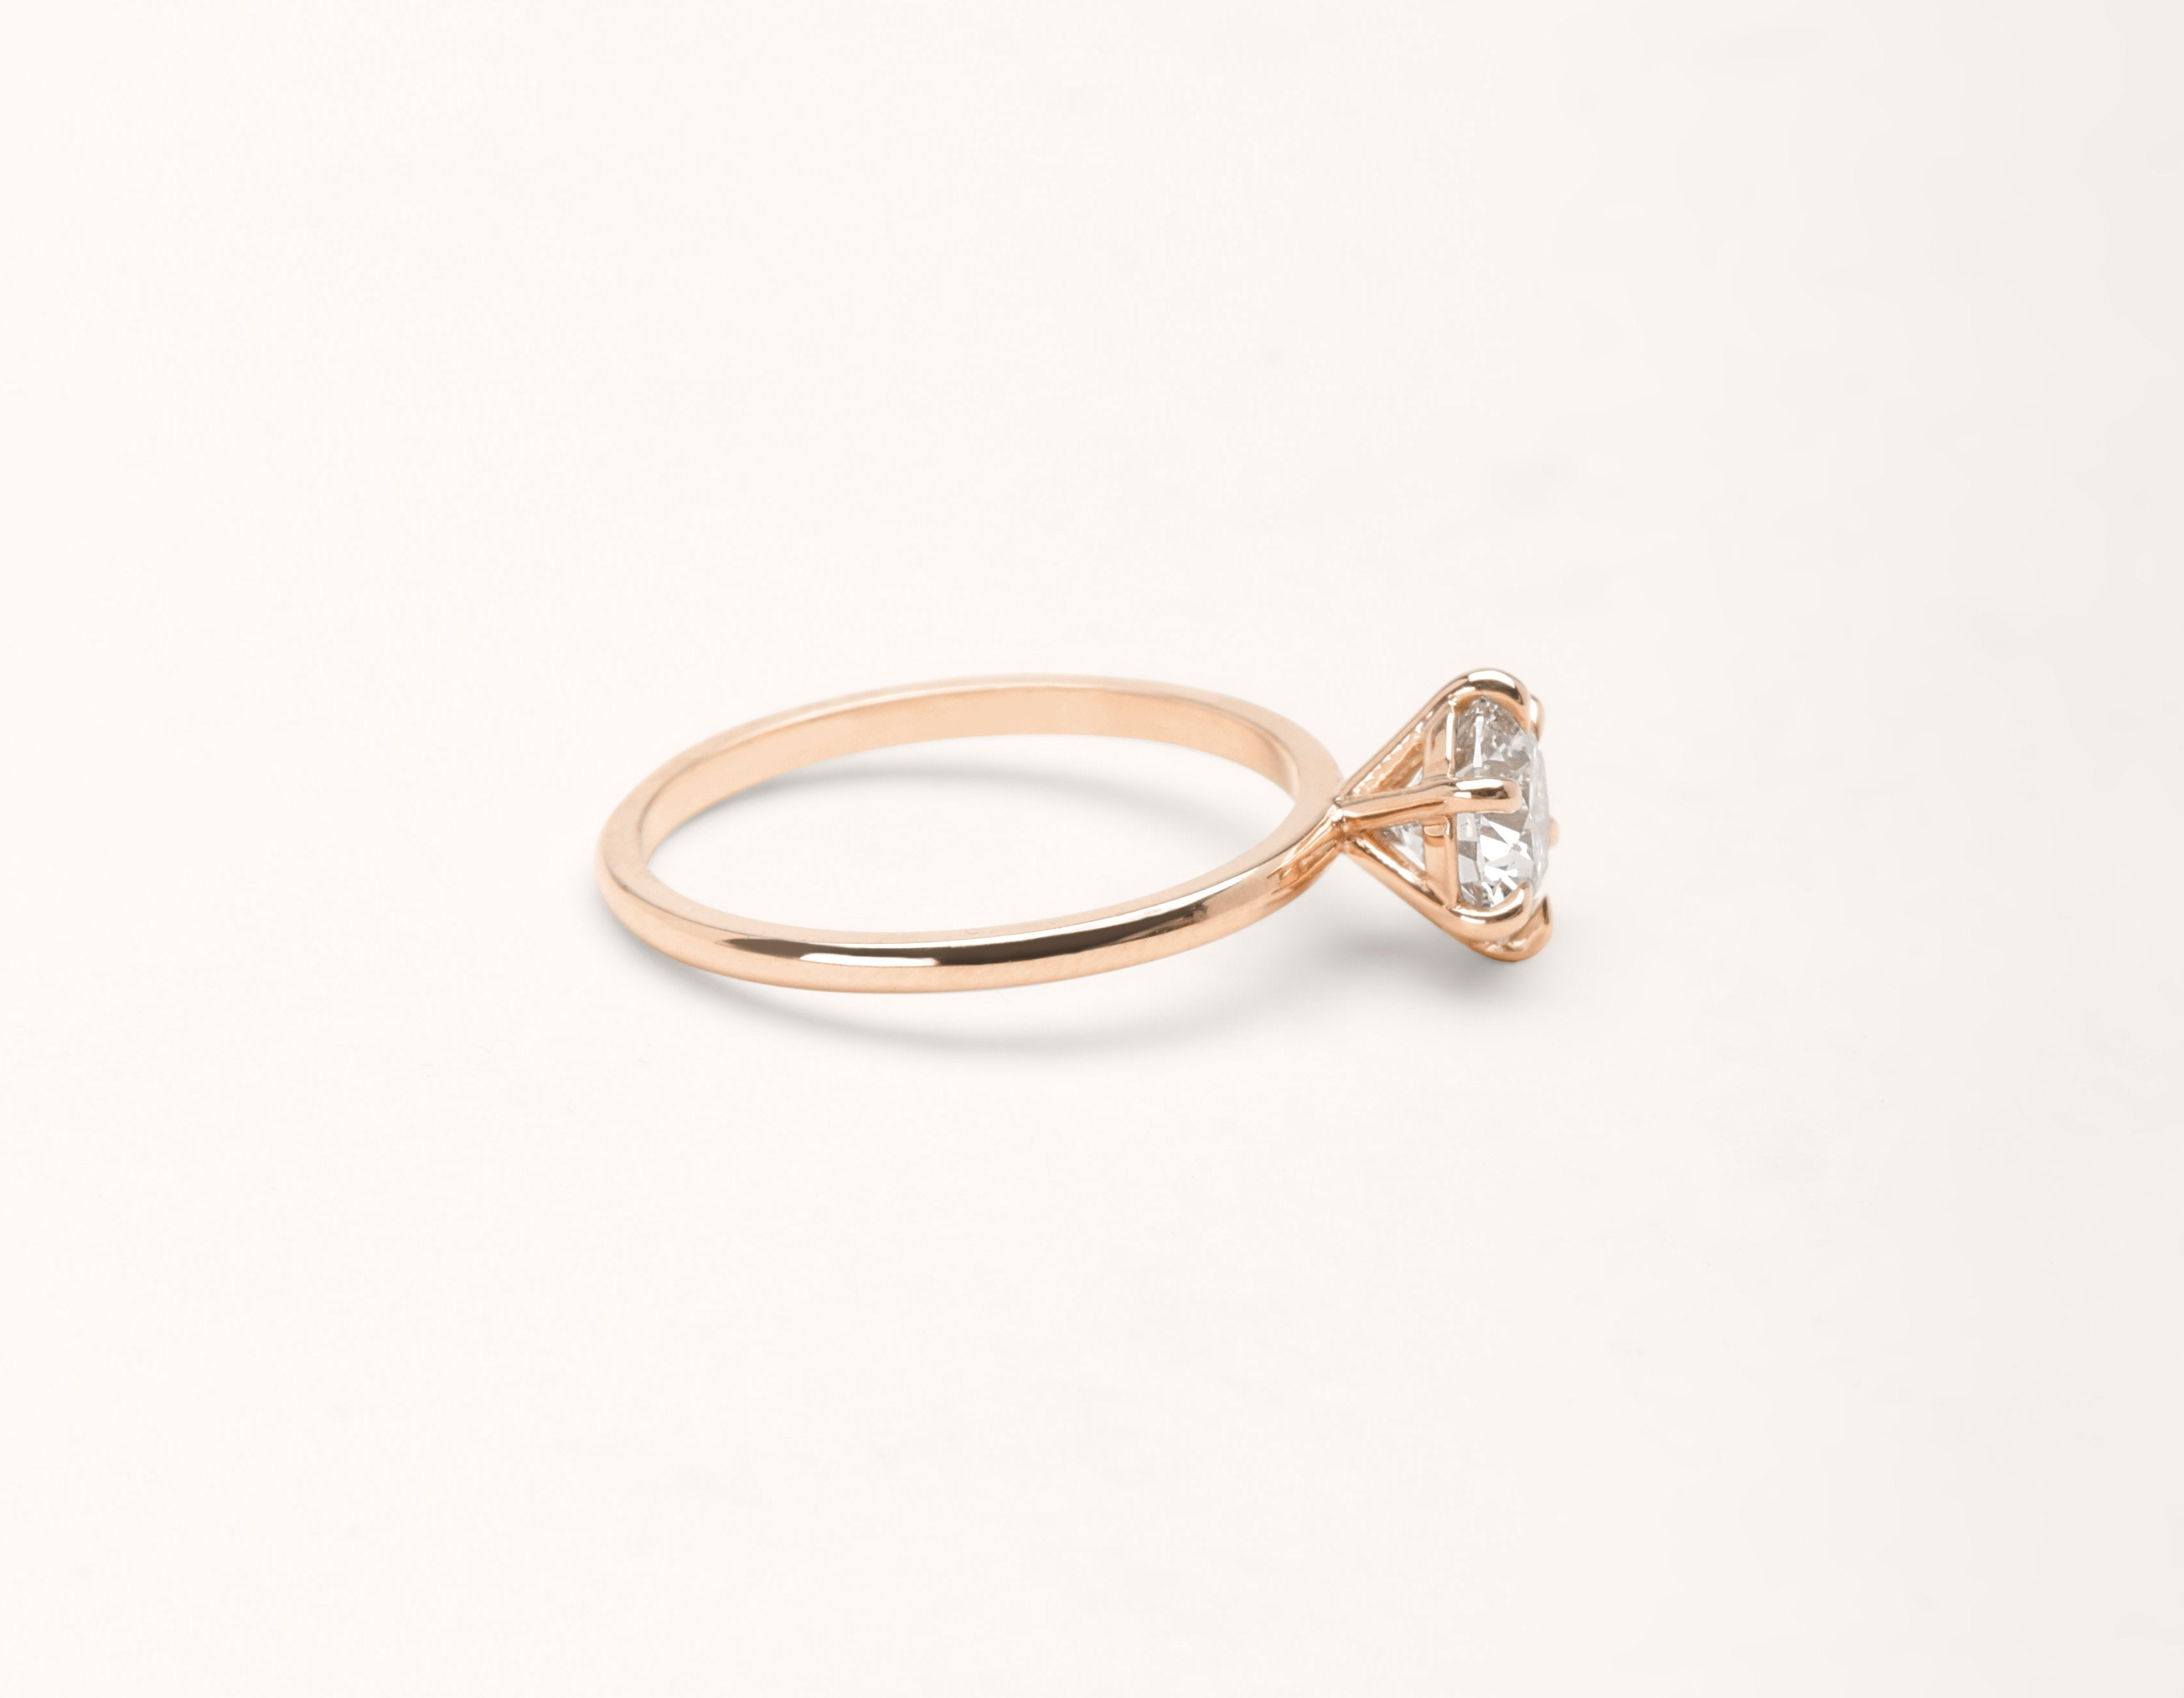 The Solitaire Engagement Ring 18k Rose Gold Vrai Oro Wedding